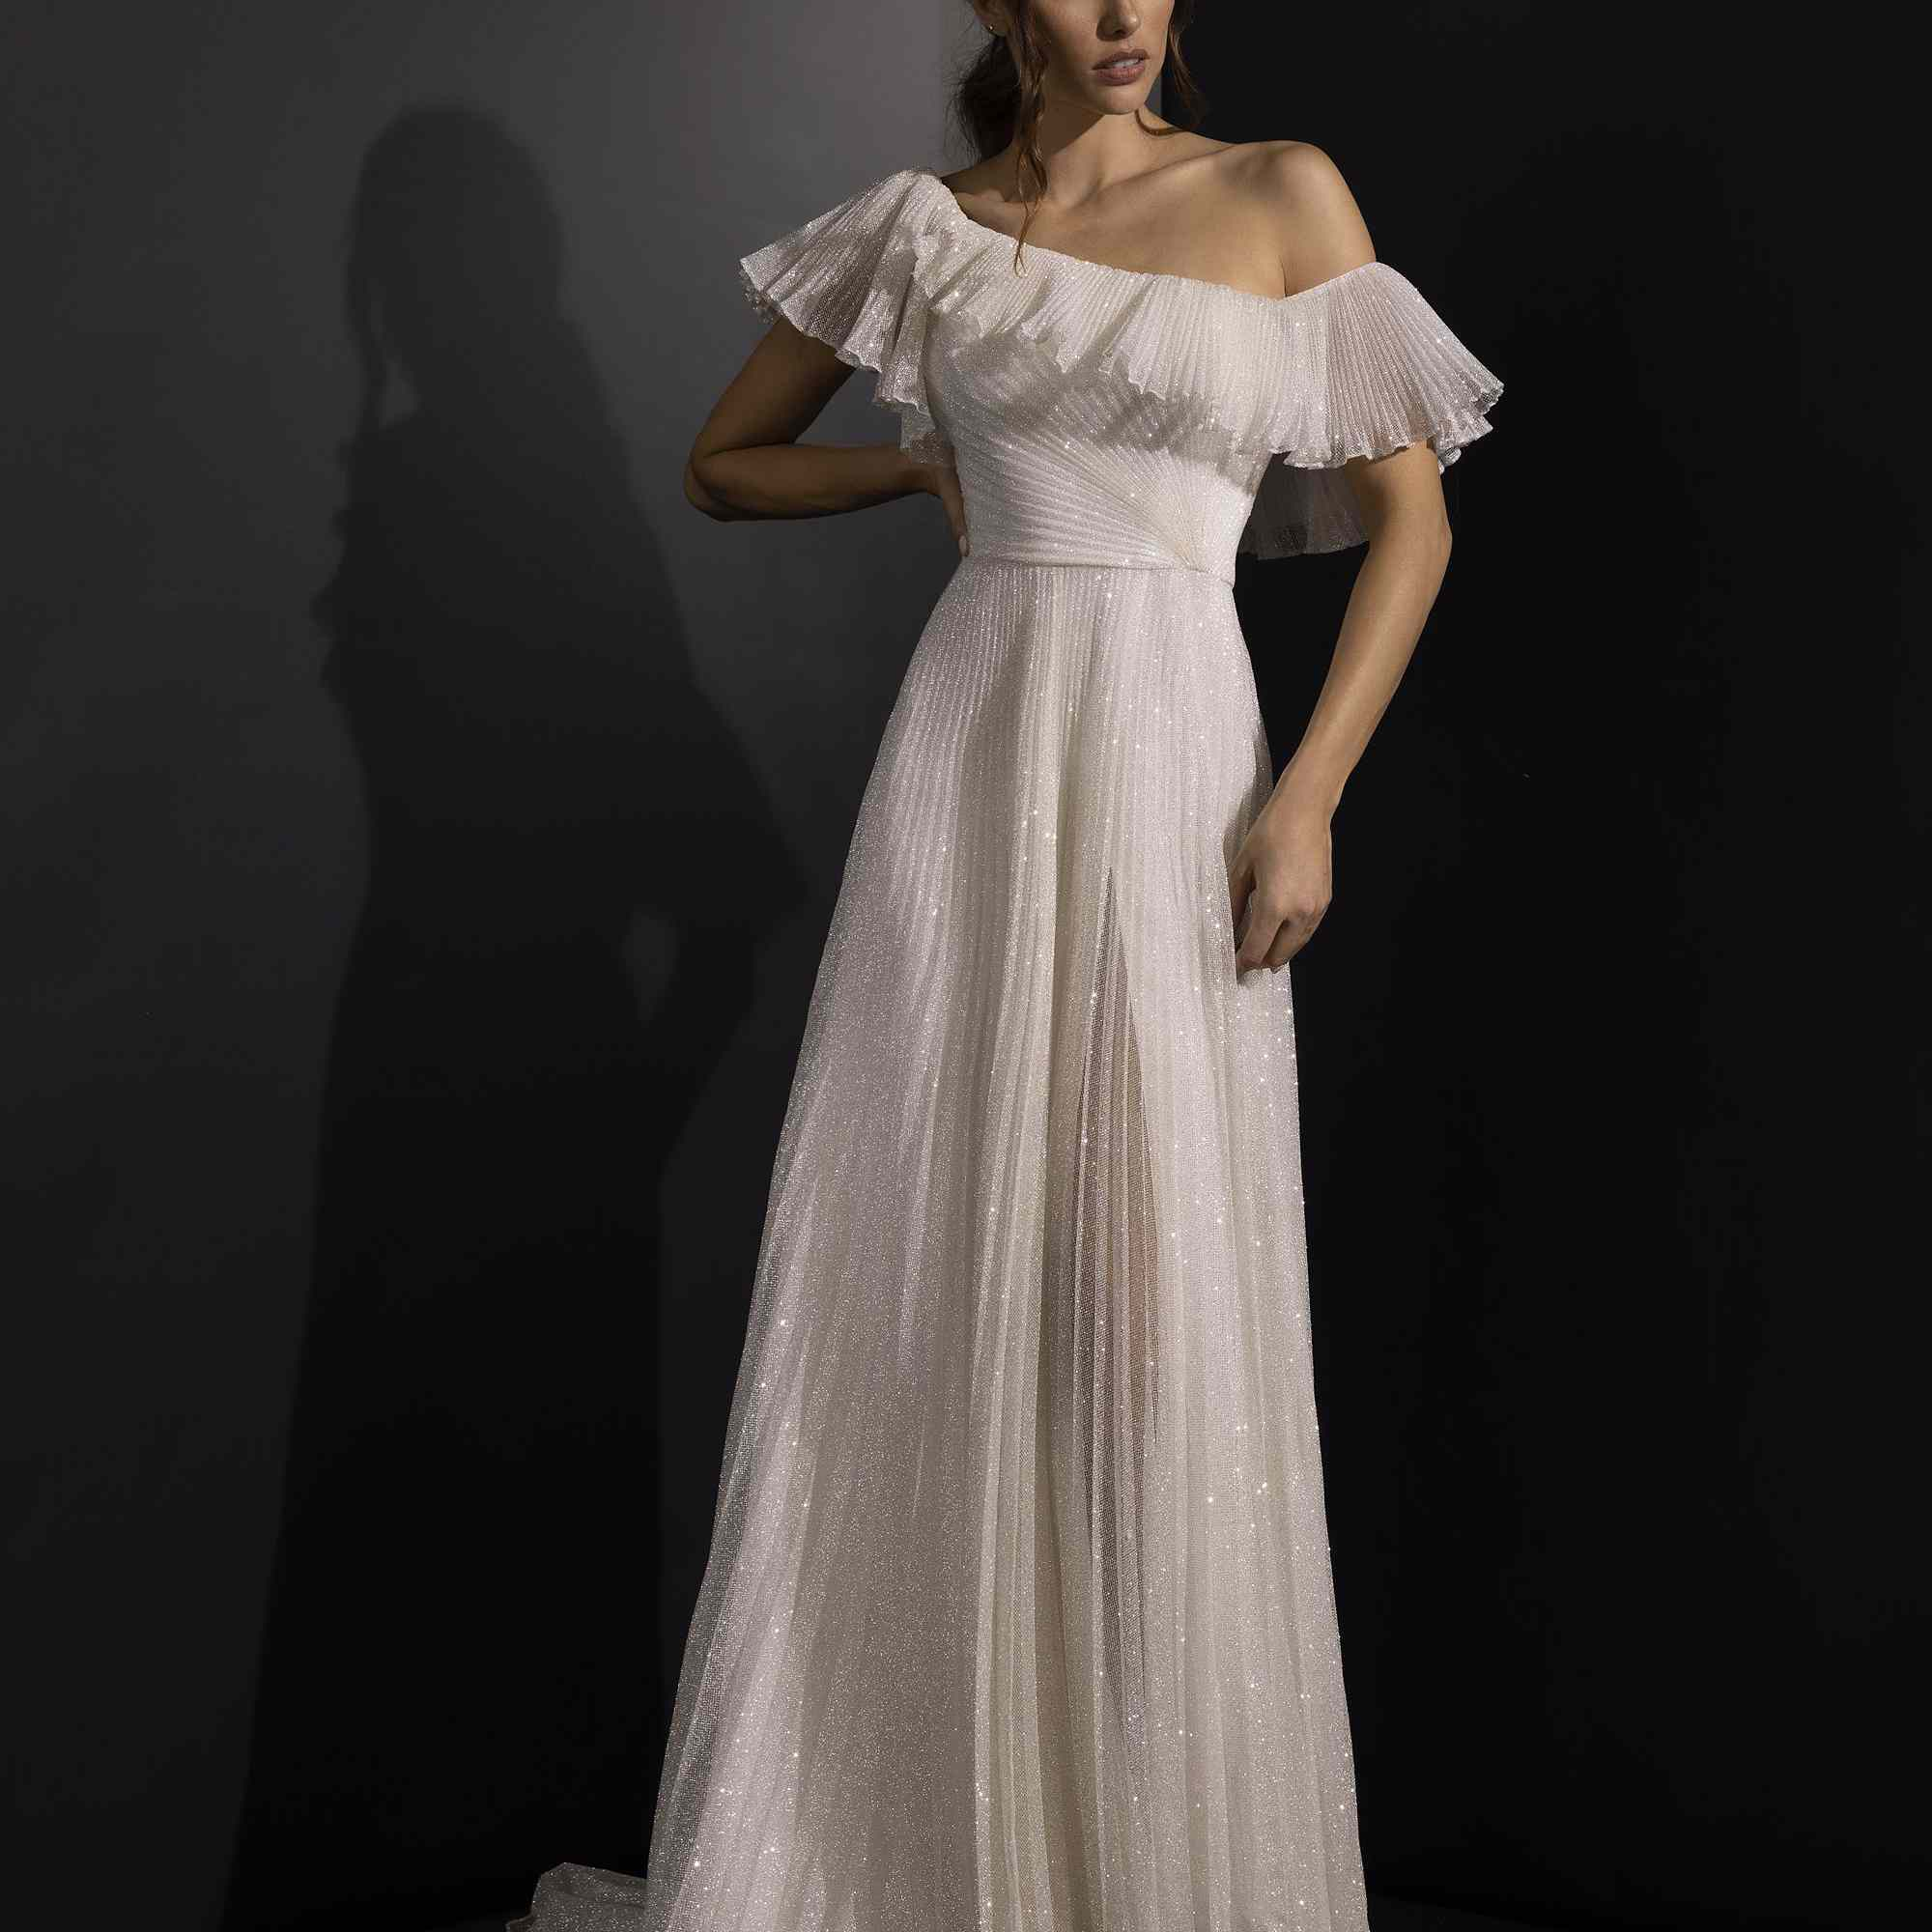 Model in asymmetrical off-the-shoulder dress with a ruffled neckline